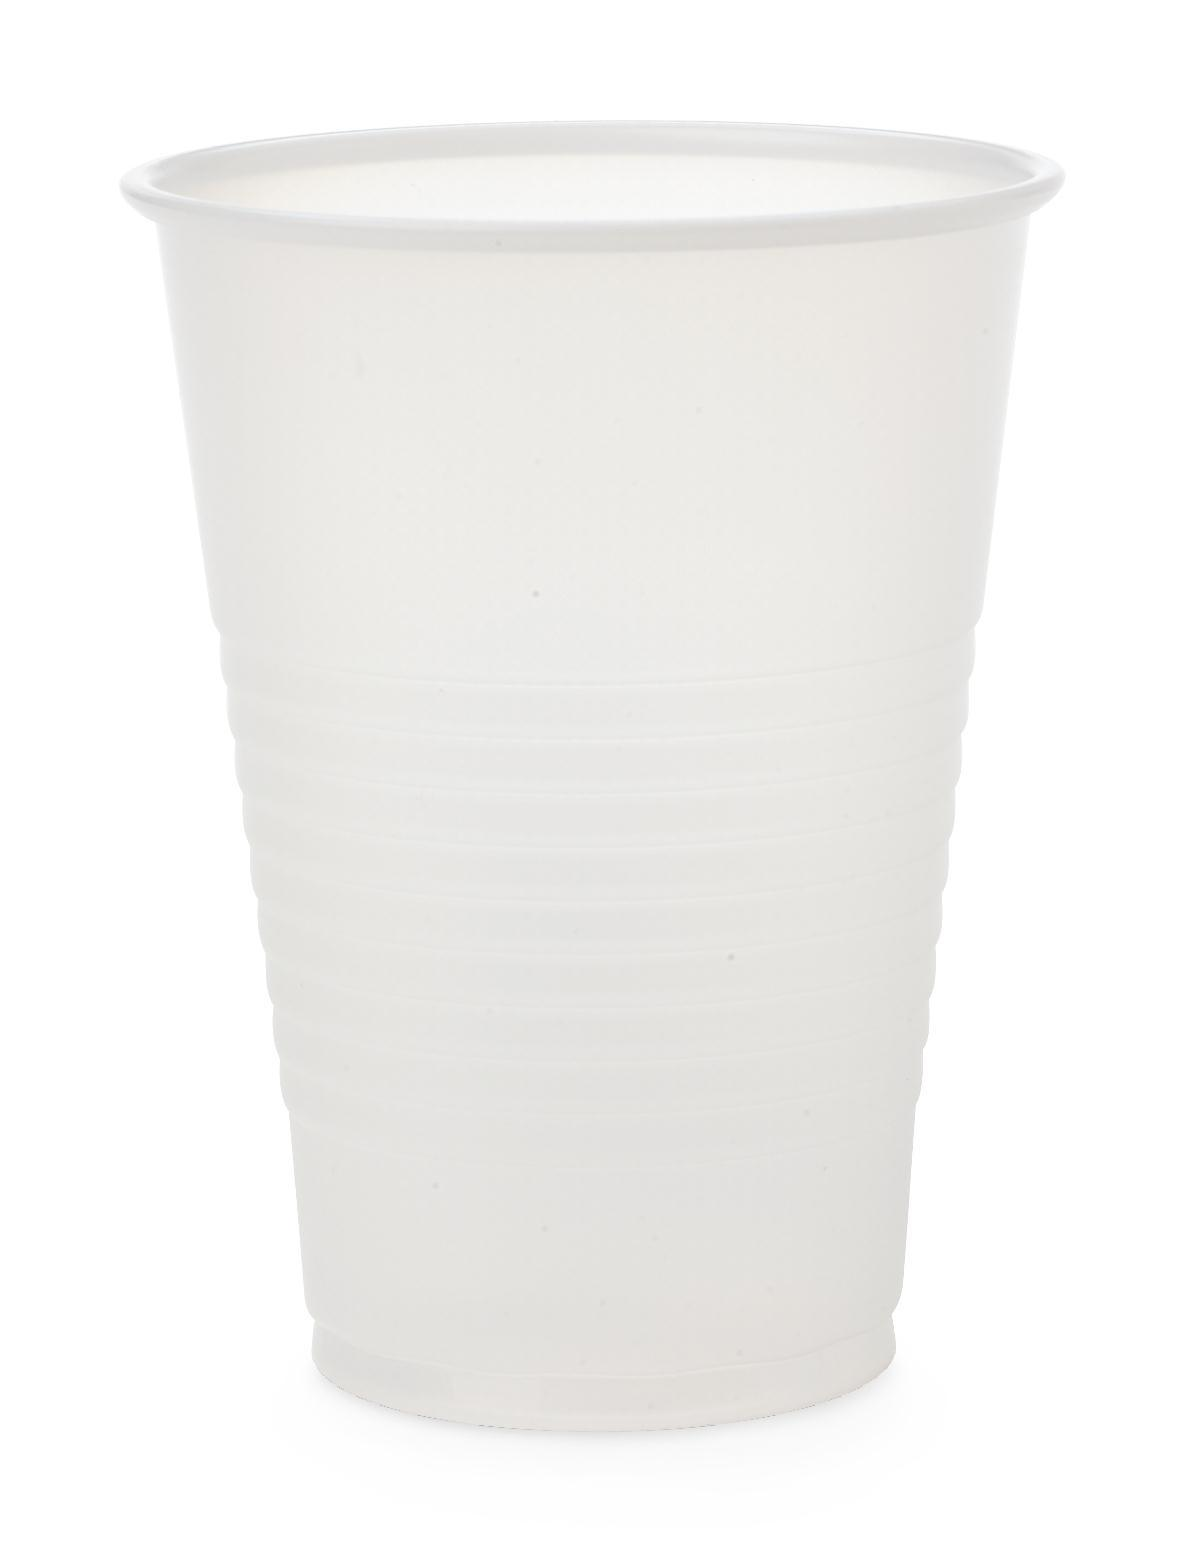 Cup Plastic 7 Oz Translucent - Non03007 - Food Service Drinking Cups Glasses NON03007